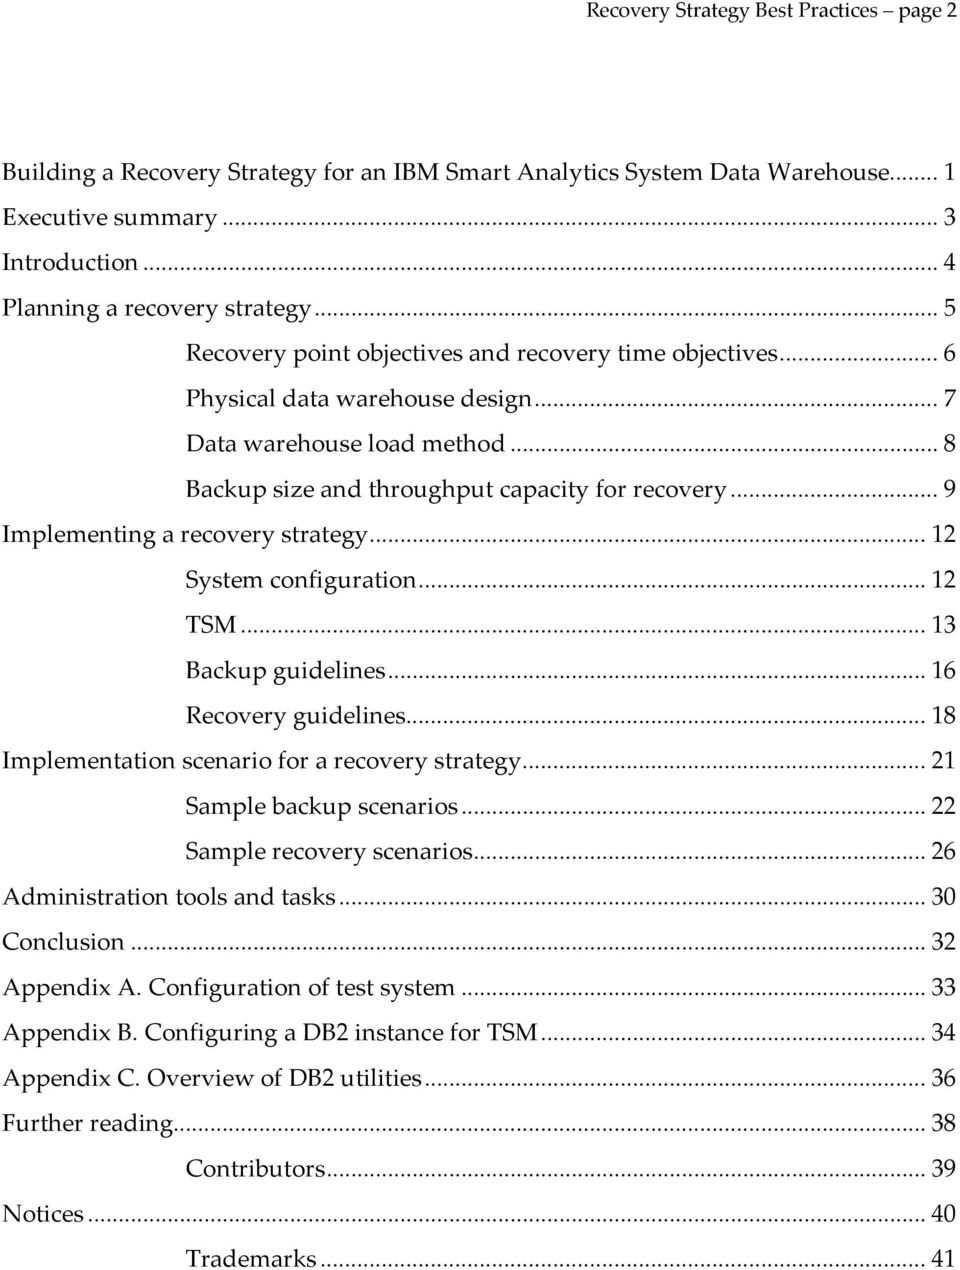 Best Practices  IBMr  Building a Recovery Strategy for an